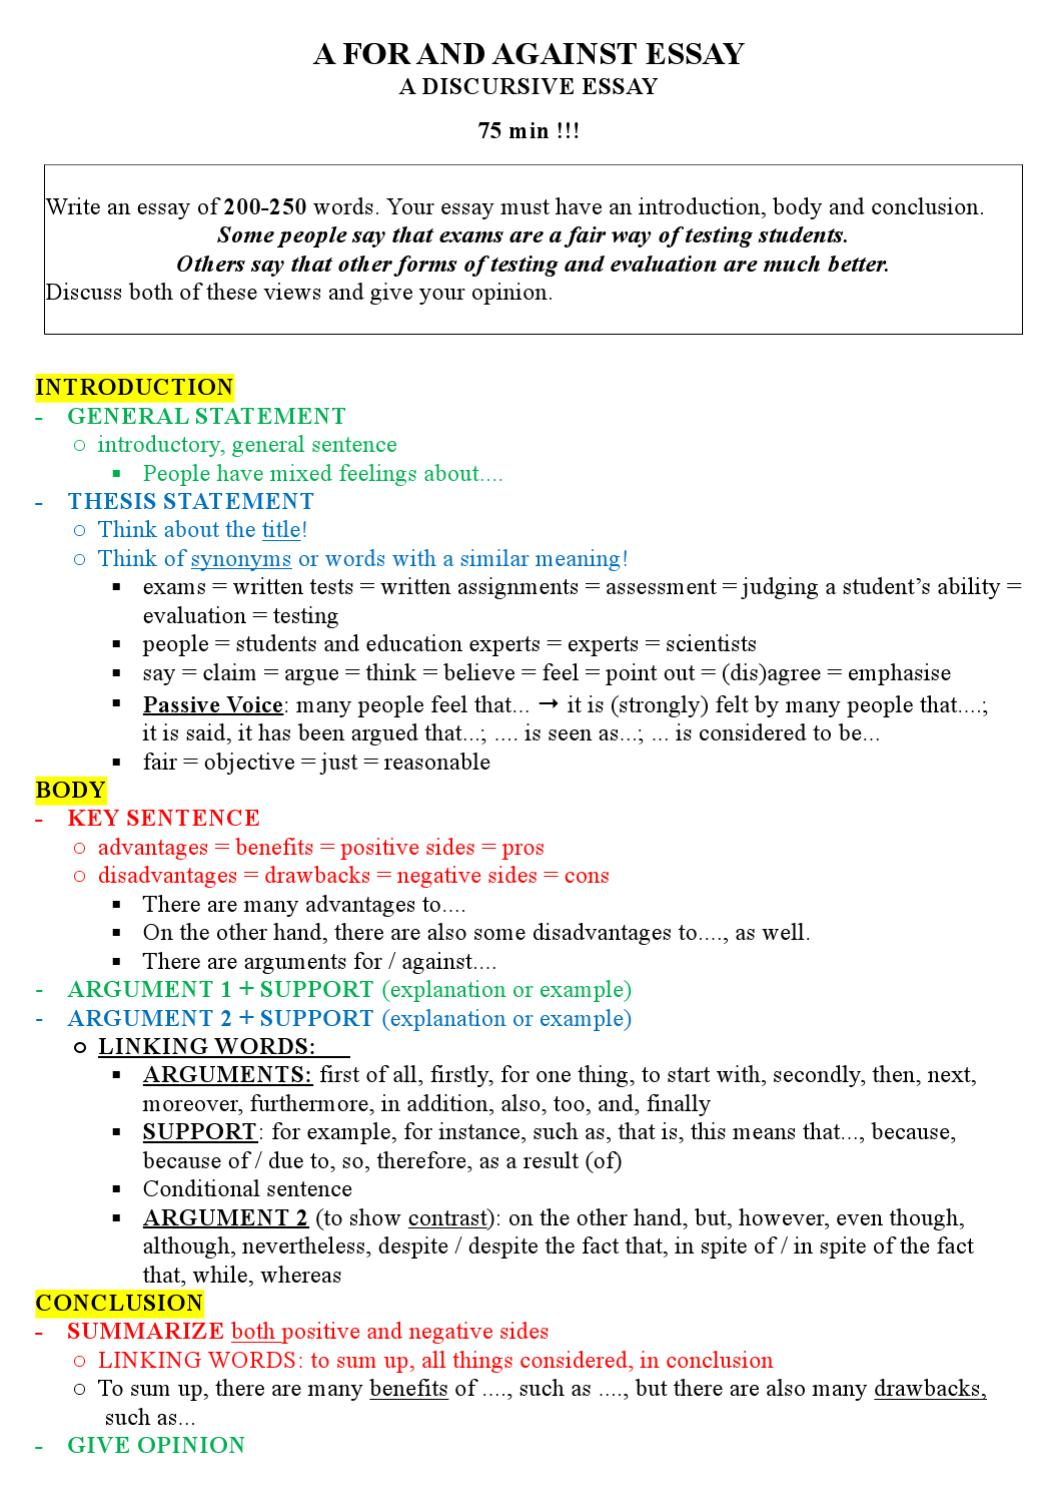 Breast cancer research paper outline